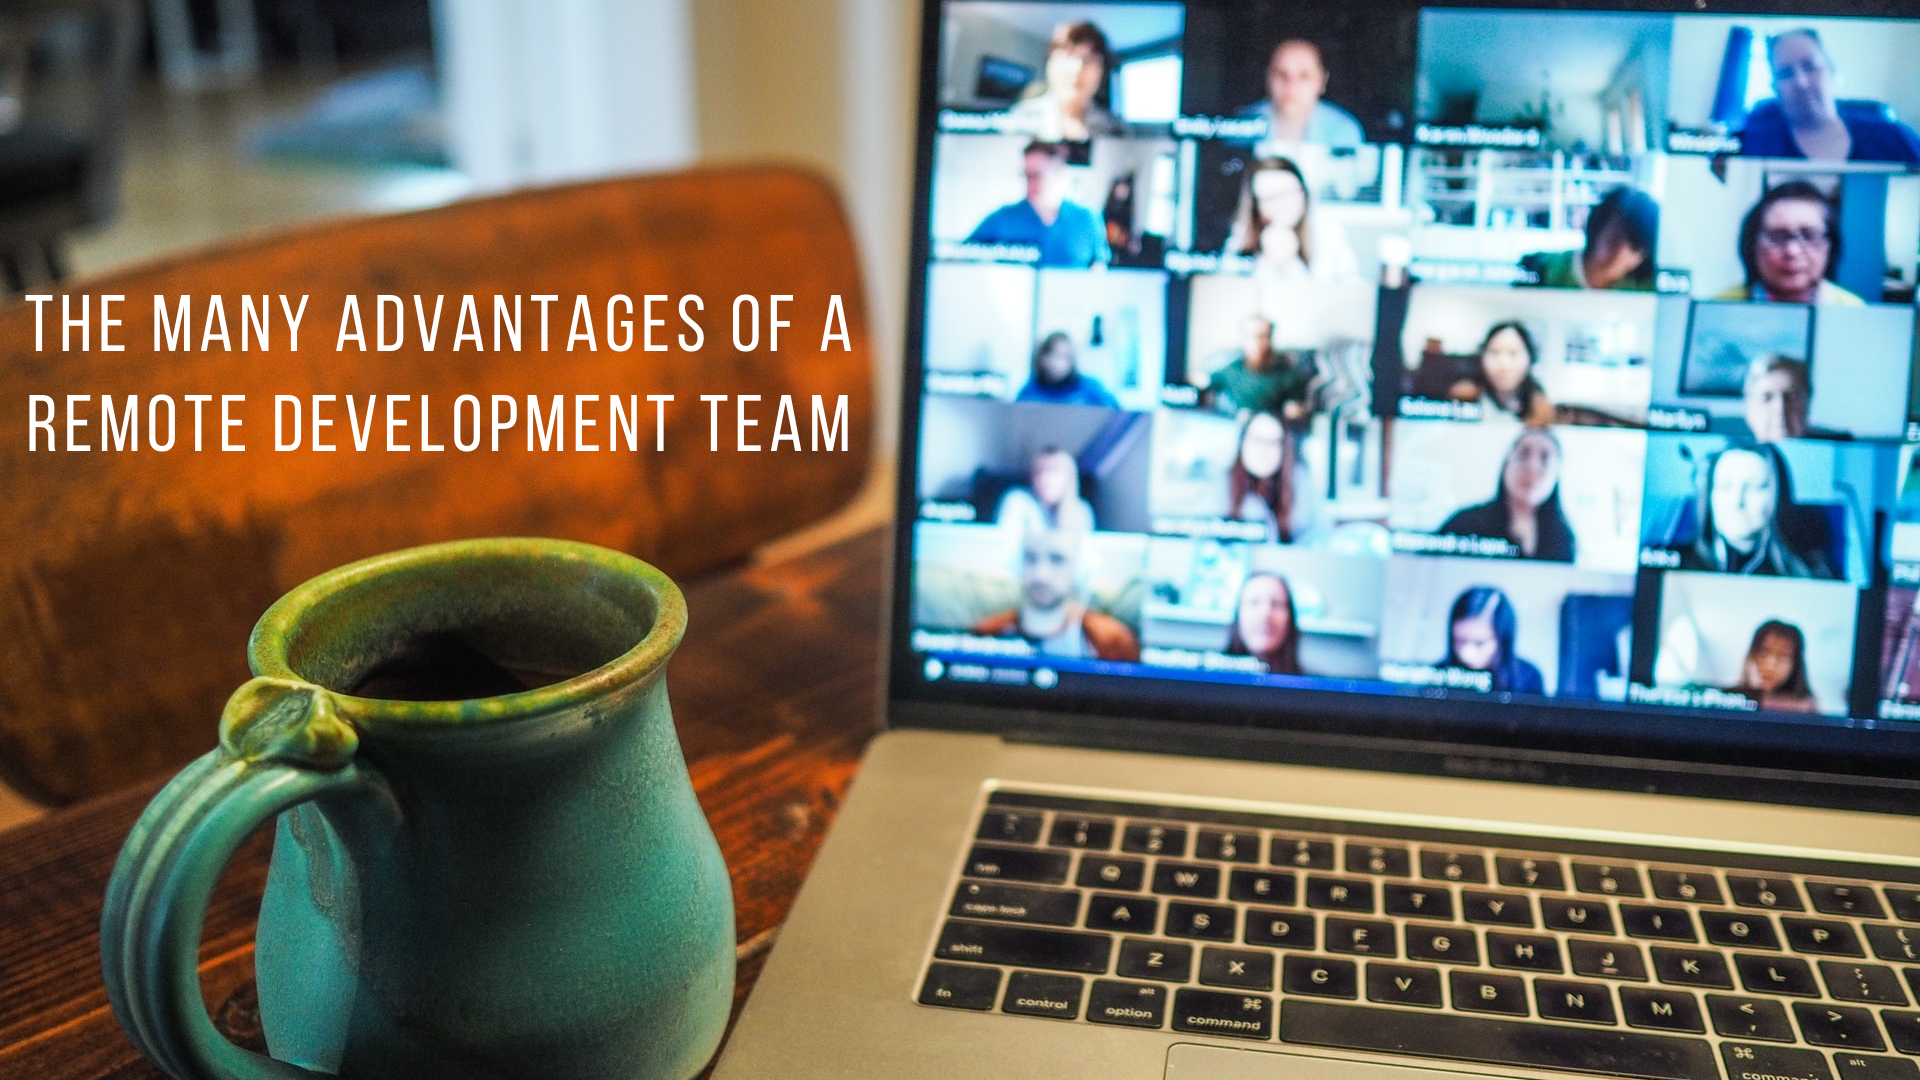 Many Advantages of a Remote Development Team